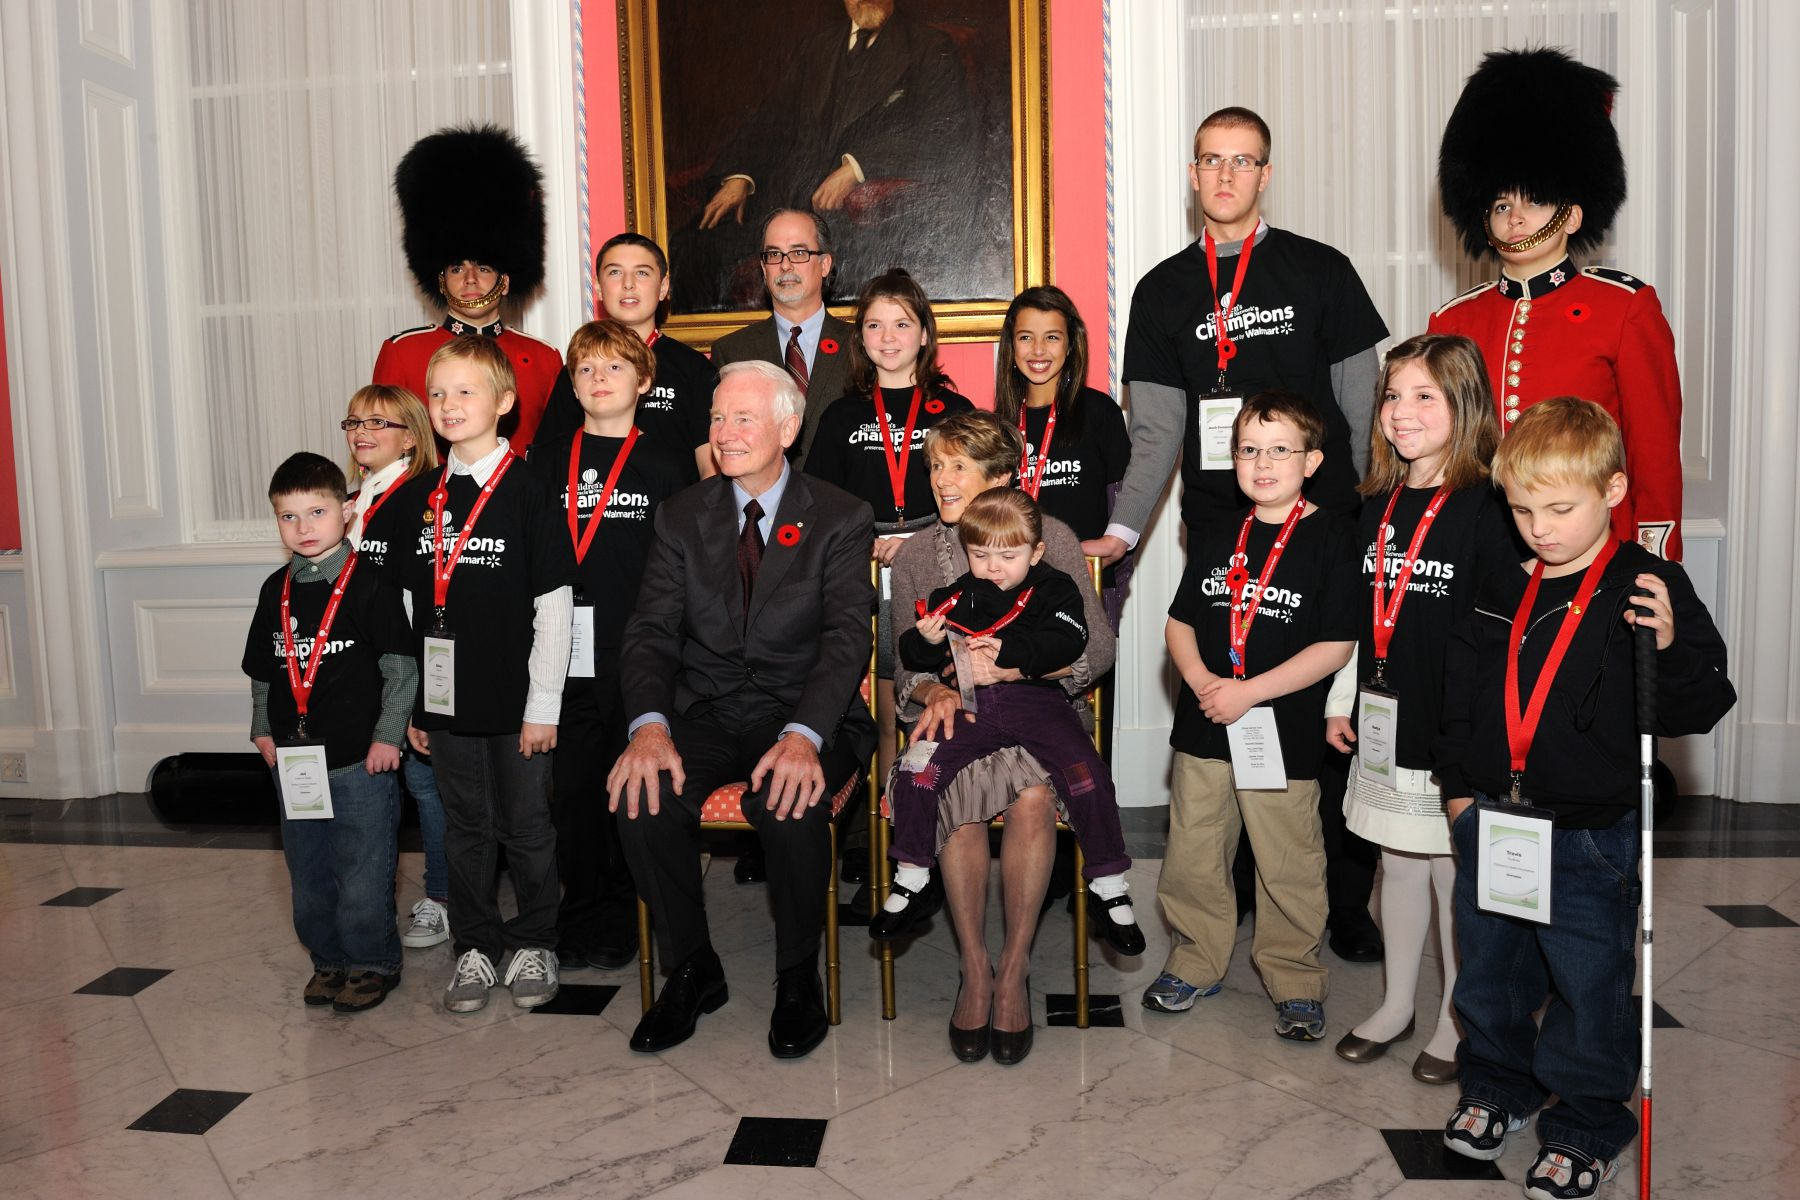 The reception was for Canadian children and families of the Children's Miracle Network Champions Program, which honours remarkable children from Canada and the United States who have triumphed despite severe medical challenges.